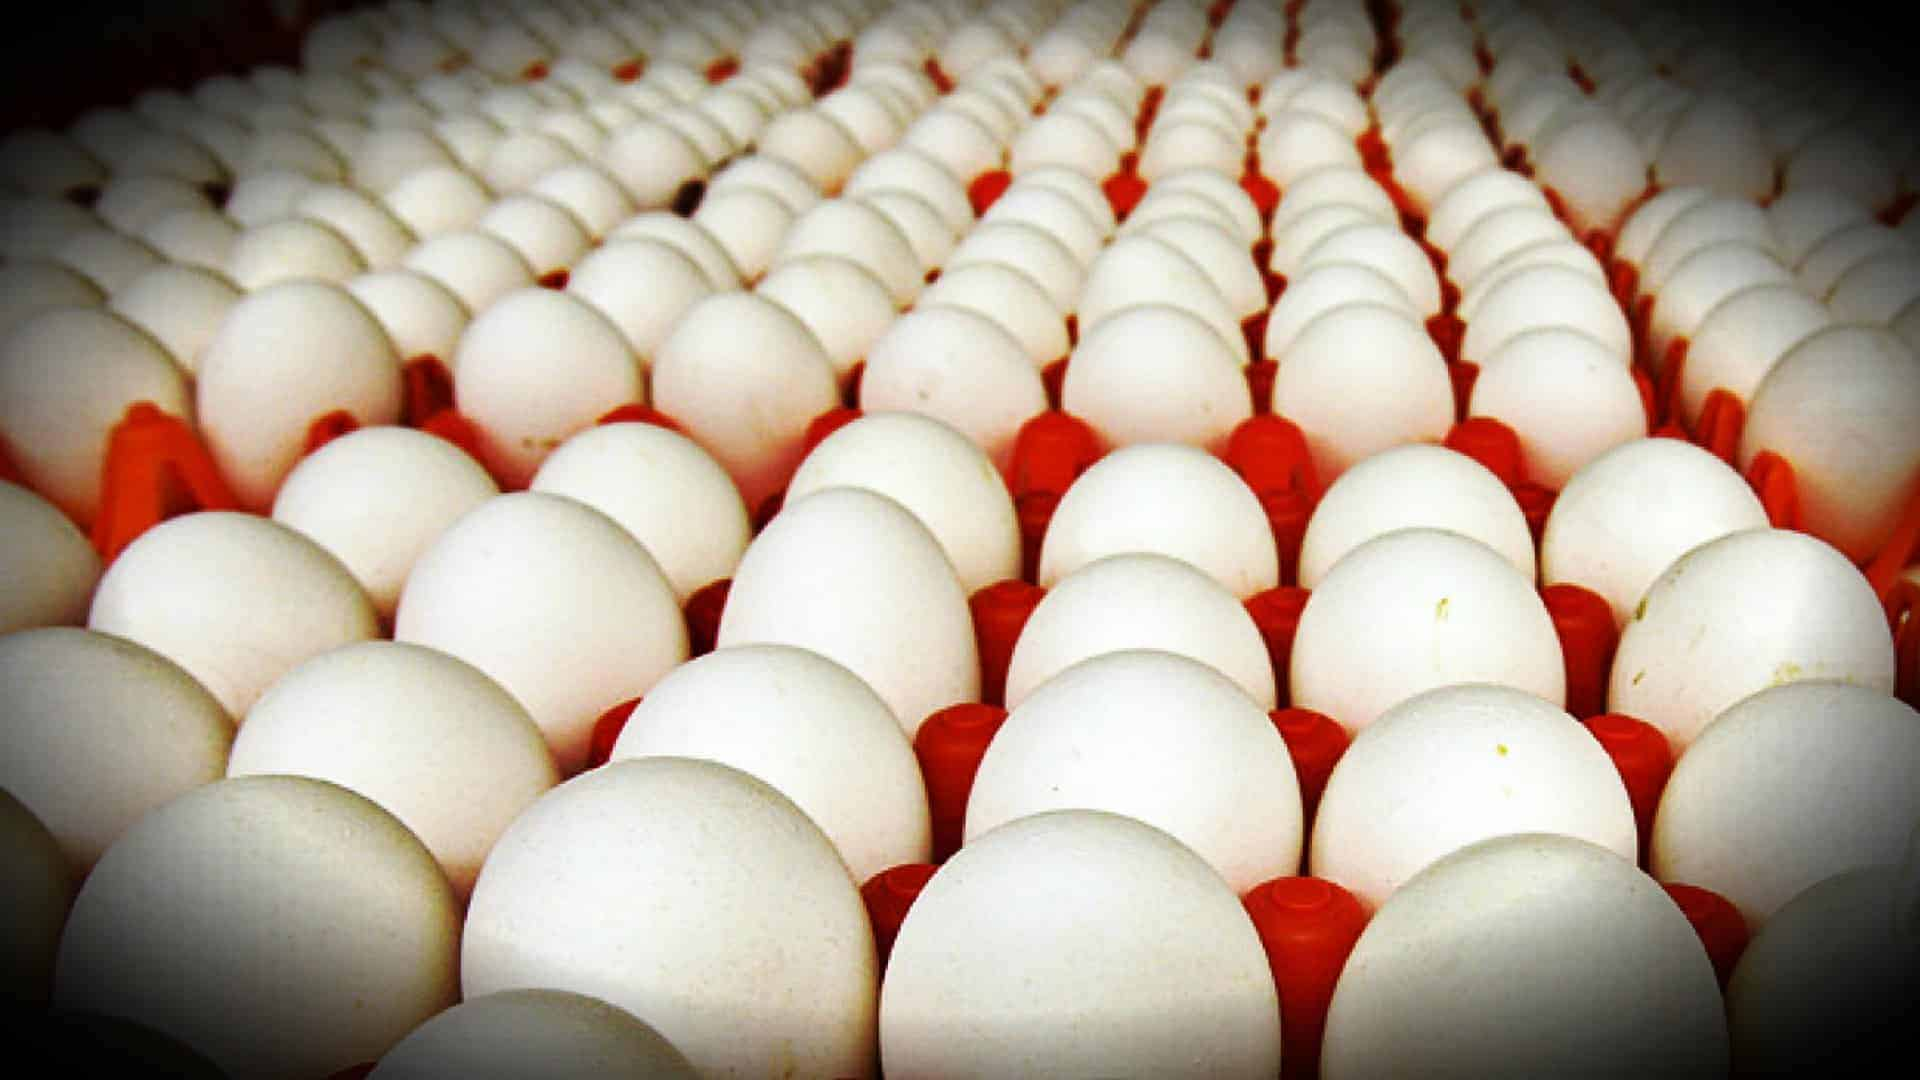 Dozens of trays of large white eggs are shown, filling the image.